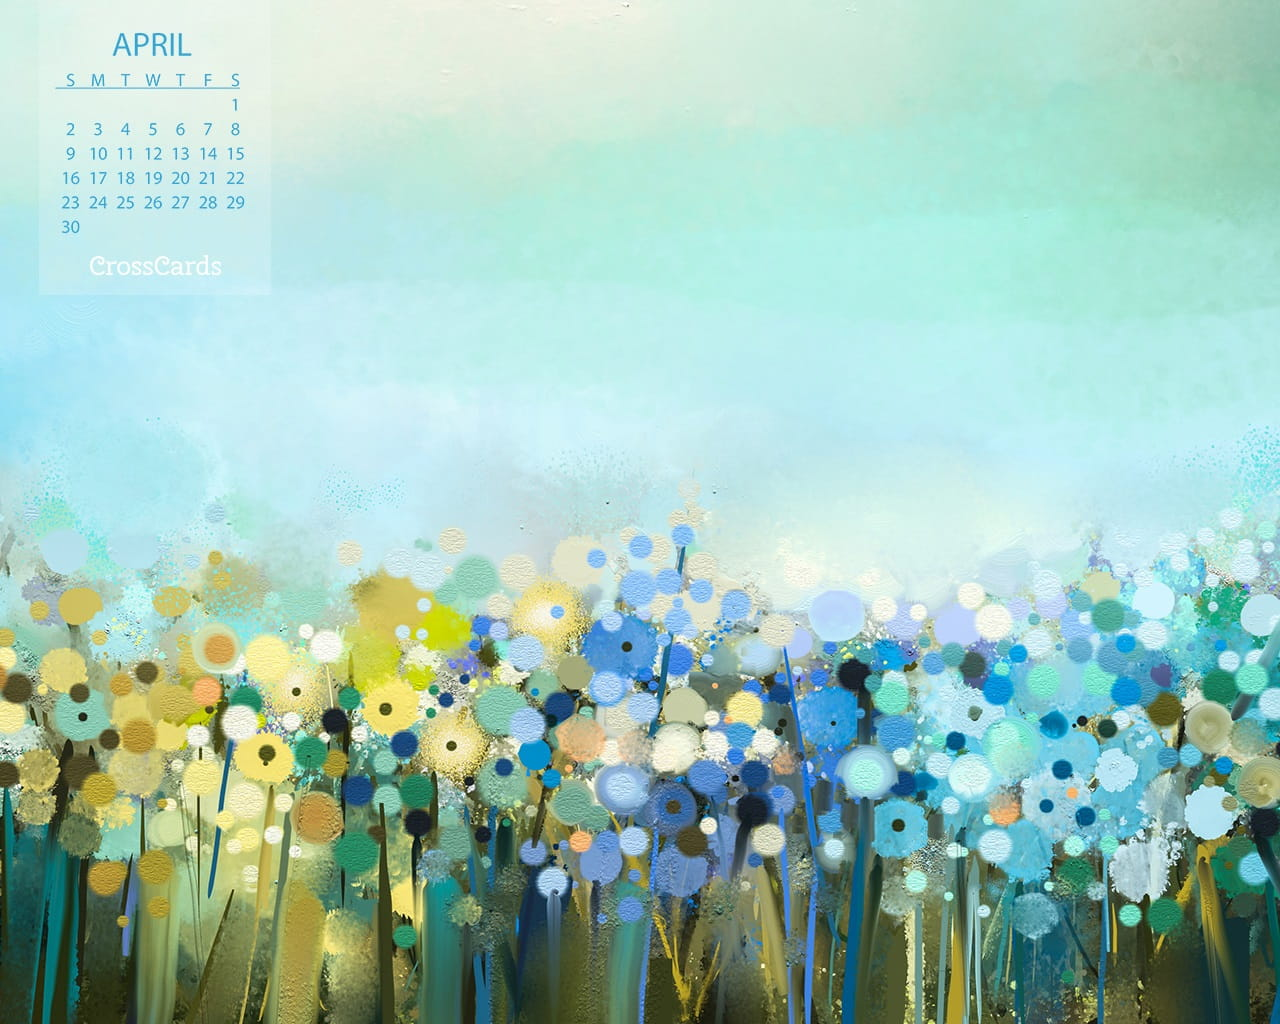 April Calendar Screensaver : April field of flowers desktop calendar free